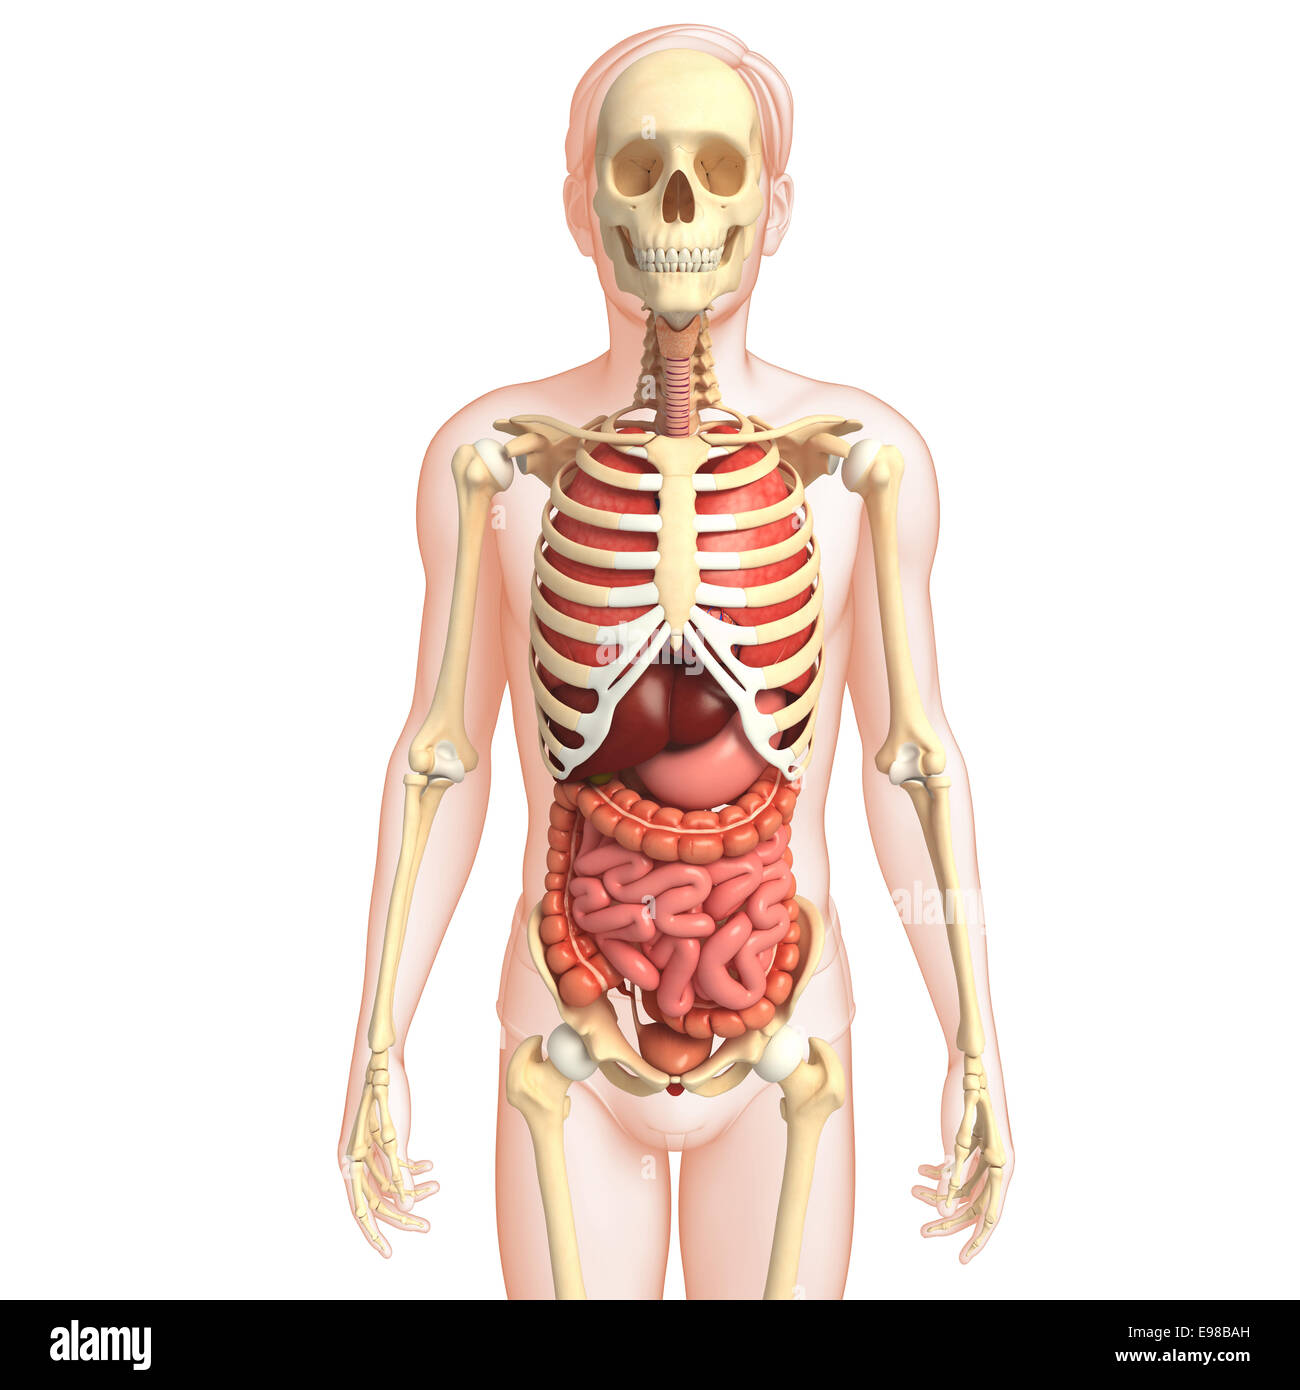 Illustration of human digestive system of skeleton artwork Stock ...